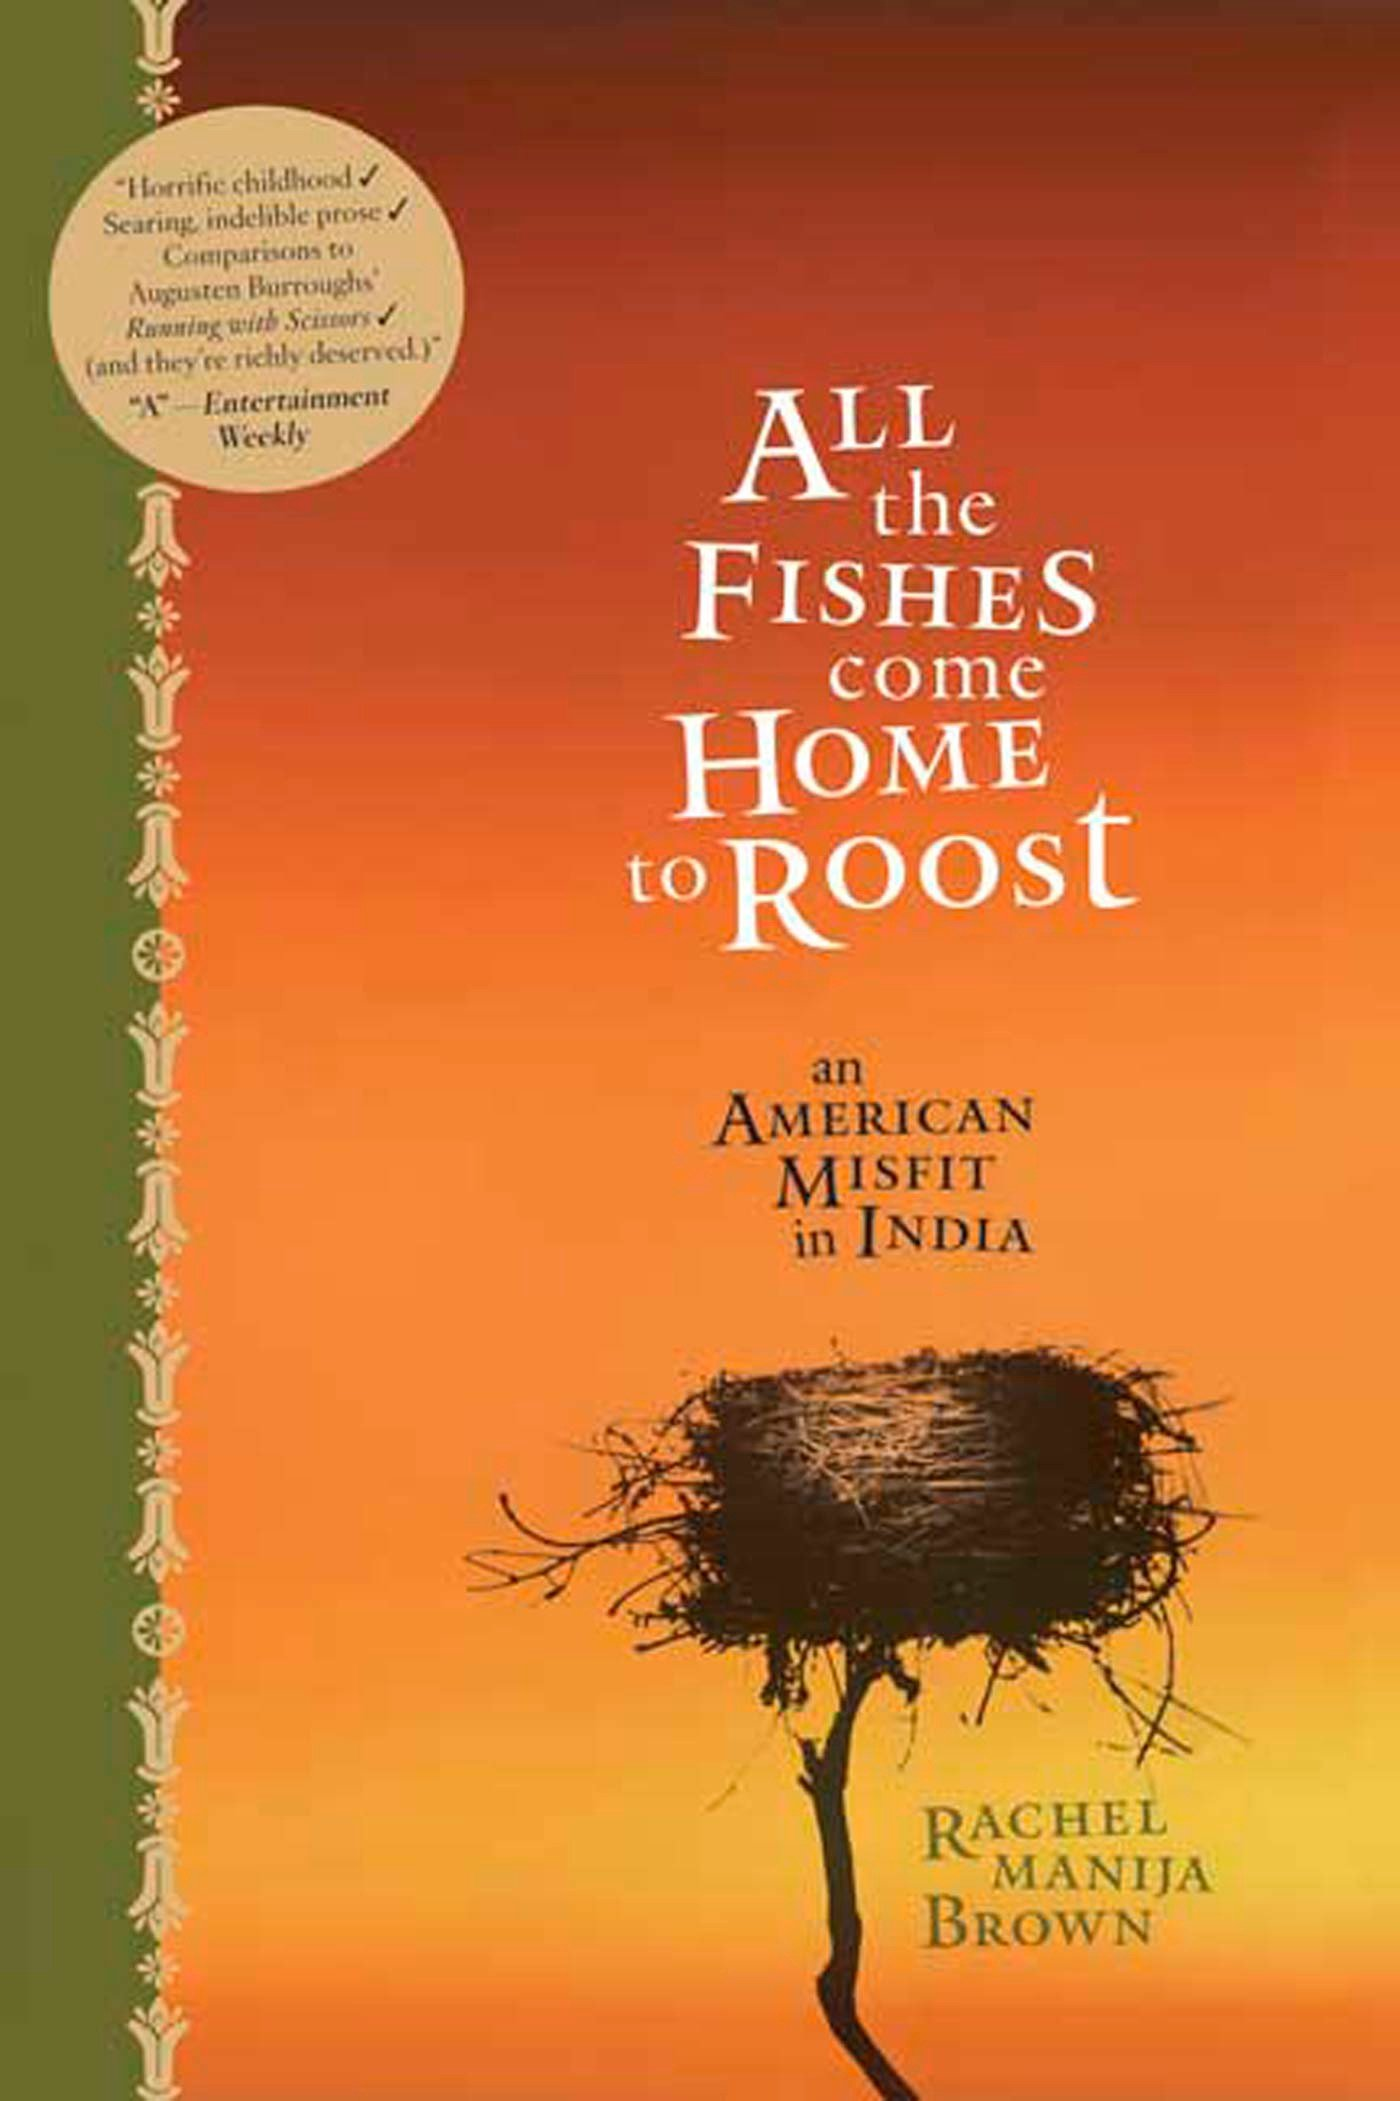 All the Fishes Come Home to Roost: An American Misfit in